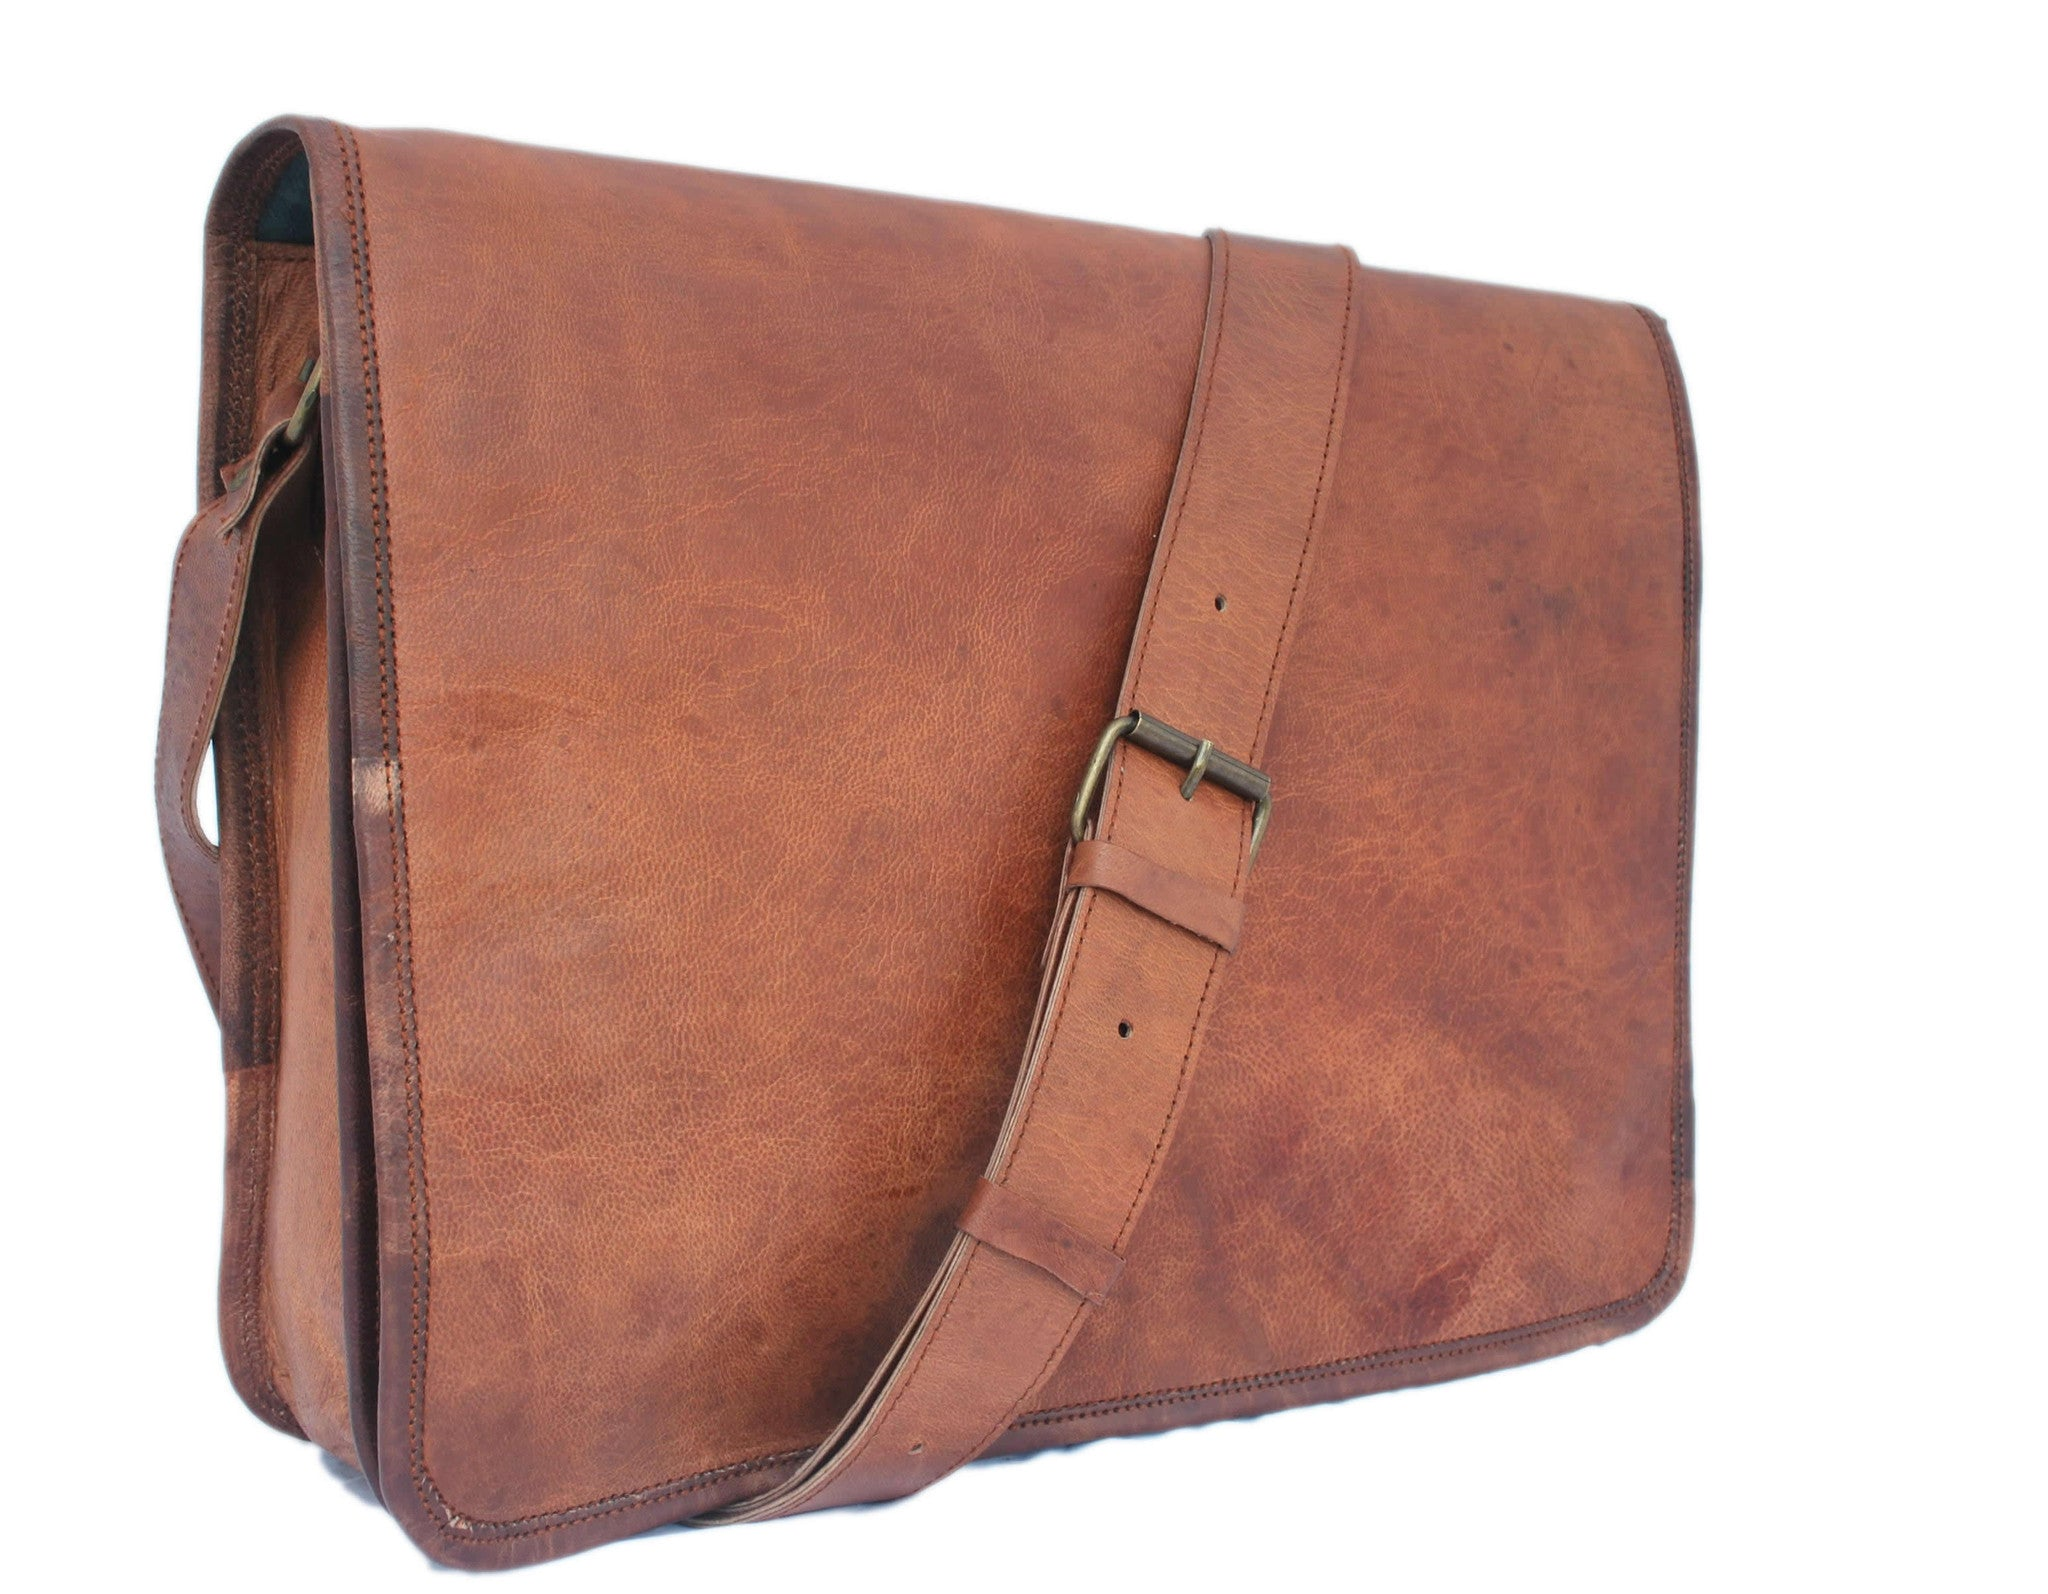 Leather bags for mens · Leather vintage messenger bag ... 225da1438bfa3